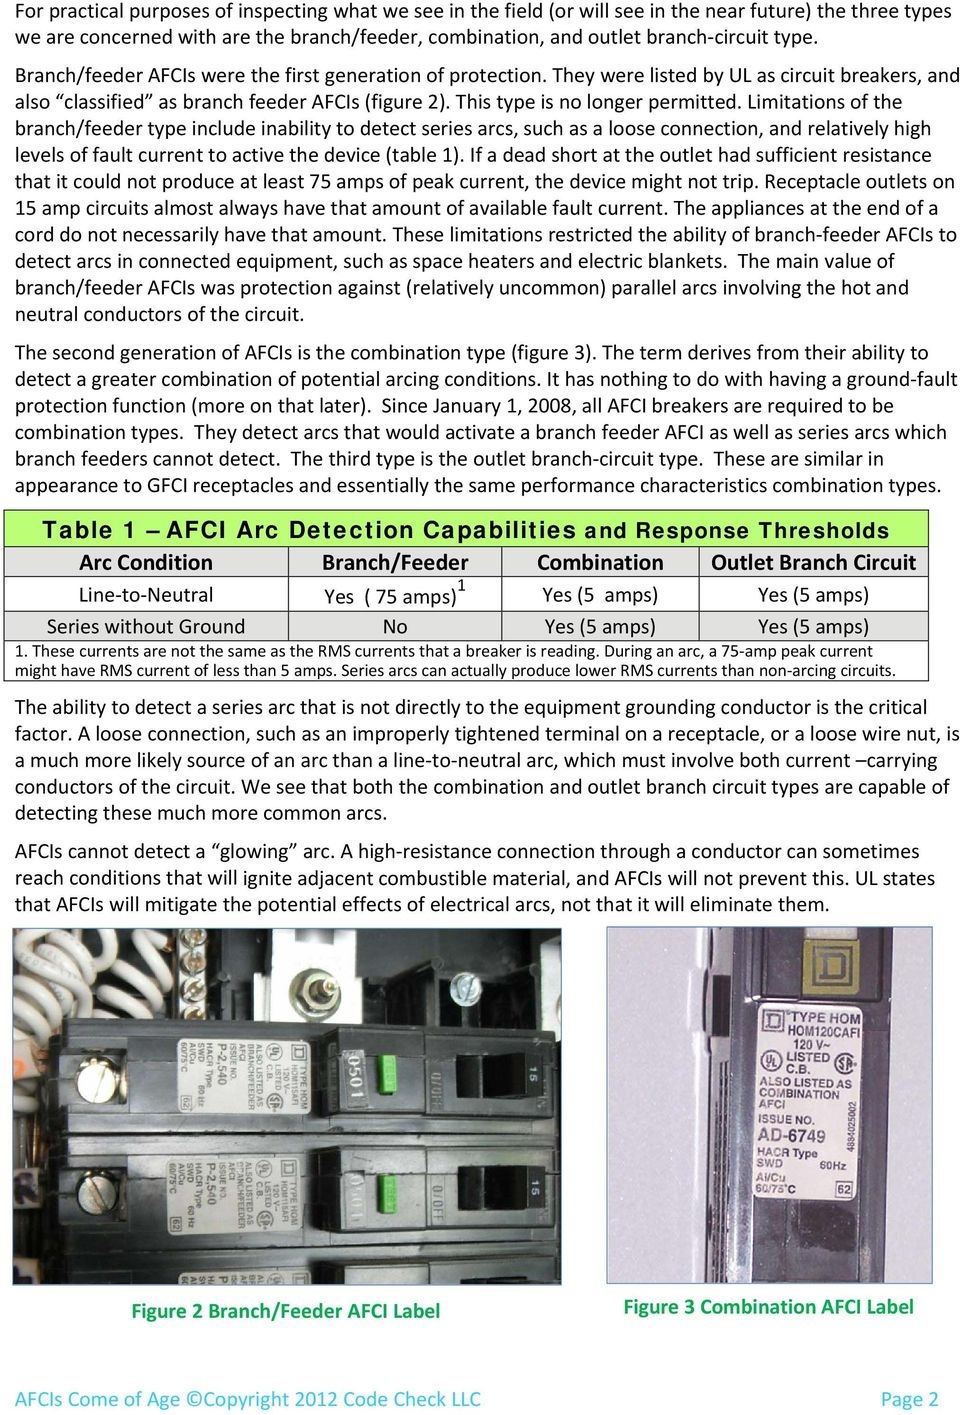 Afcis Come Of Age By Douglas Hansen Pdf Afci And Gfci Wiring Diagram Find A Guide With Limitations The Branch Feeder Type Include Inability To Detect Series Arcs Such As Outlet Circuit Types An